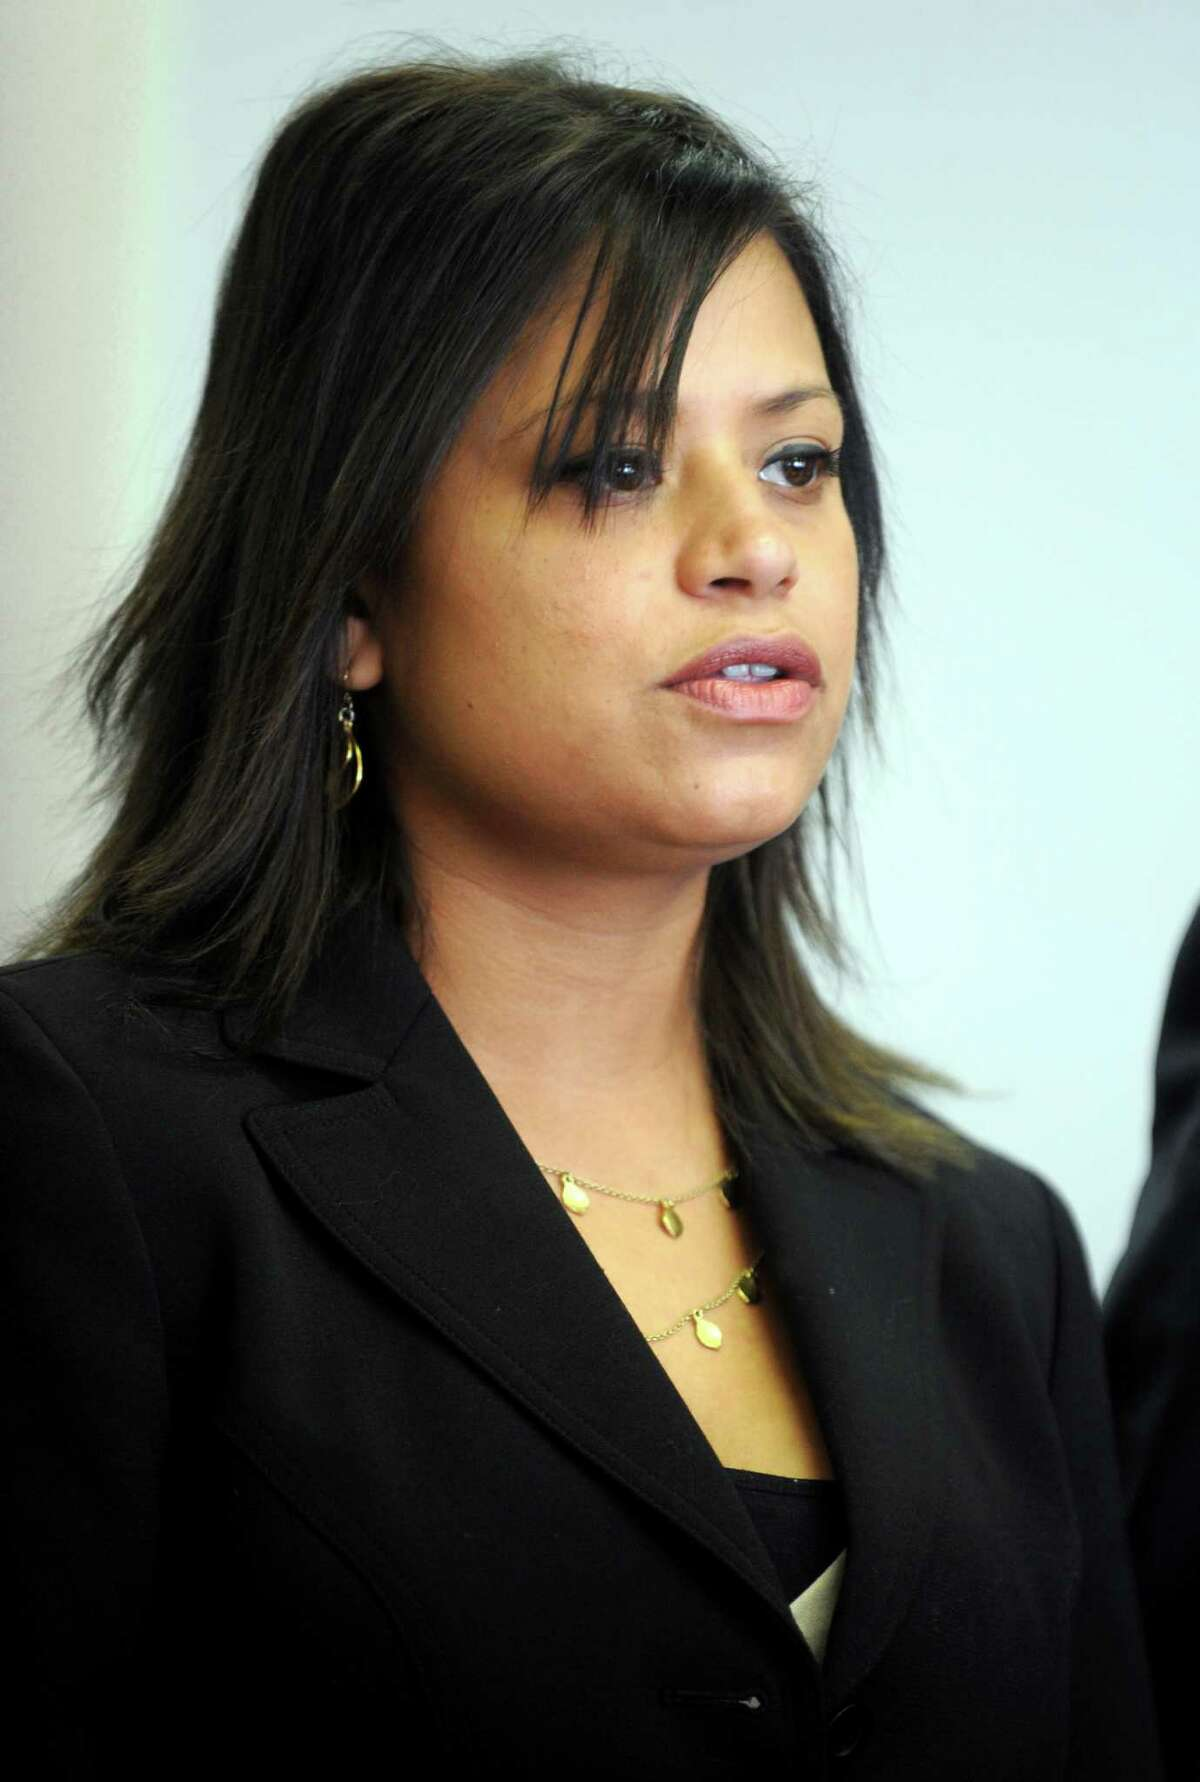 In 2013, which of the following DID NOT happen to Bridgeport state Rep. Christina Ayala? A. A state election panel accused her of fraud B. Her ex-boyfriend was arrested for torching her sister's car C. The ex's new girlfriend filed a police complaint accusing Ayala of beating her up. D. She resigned